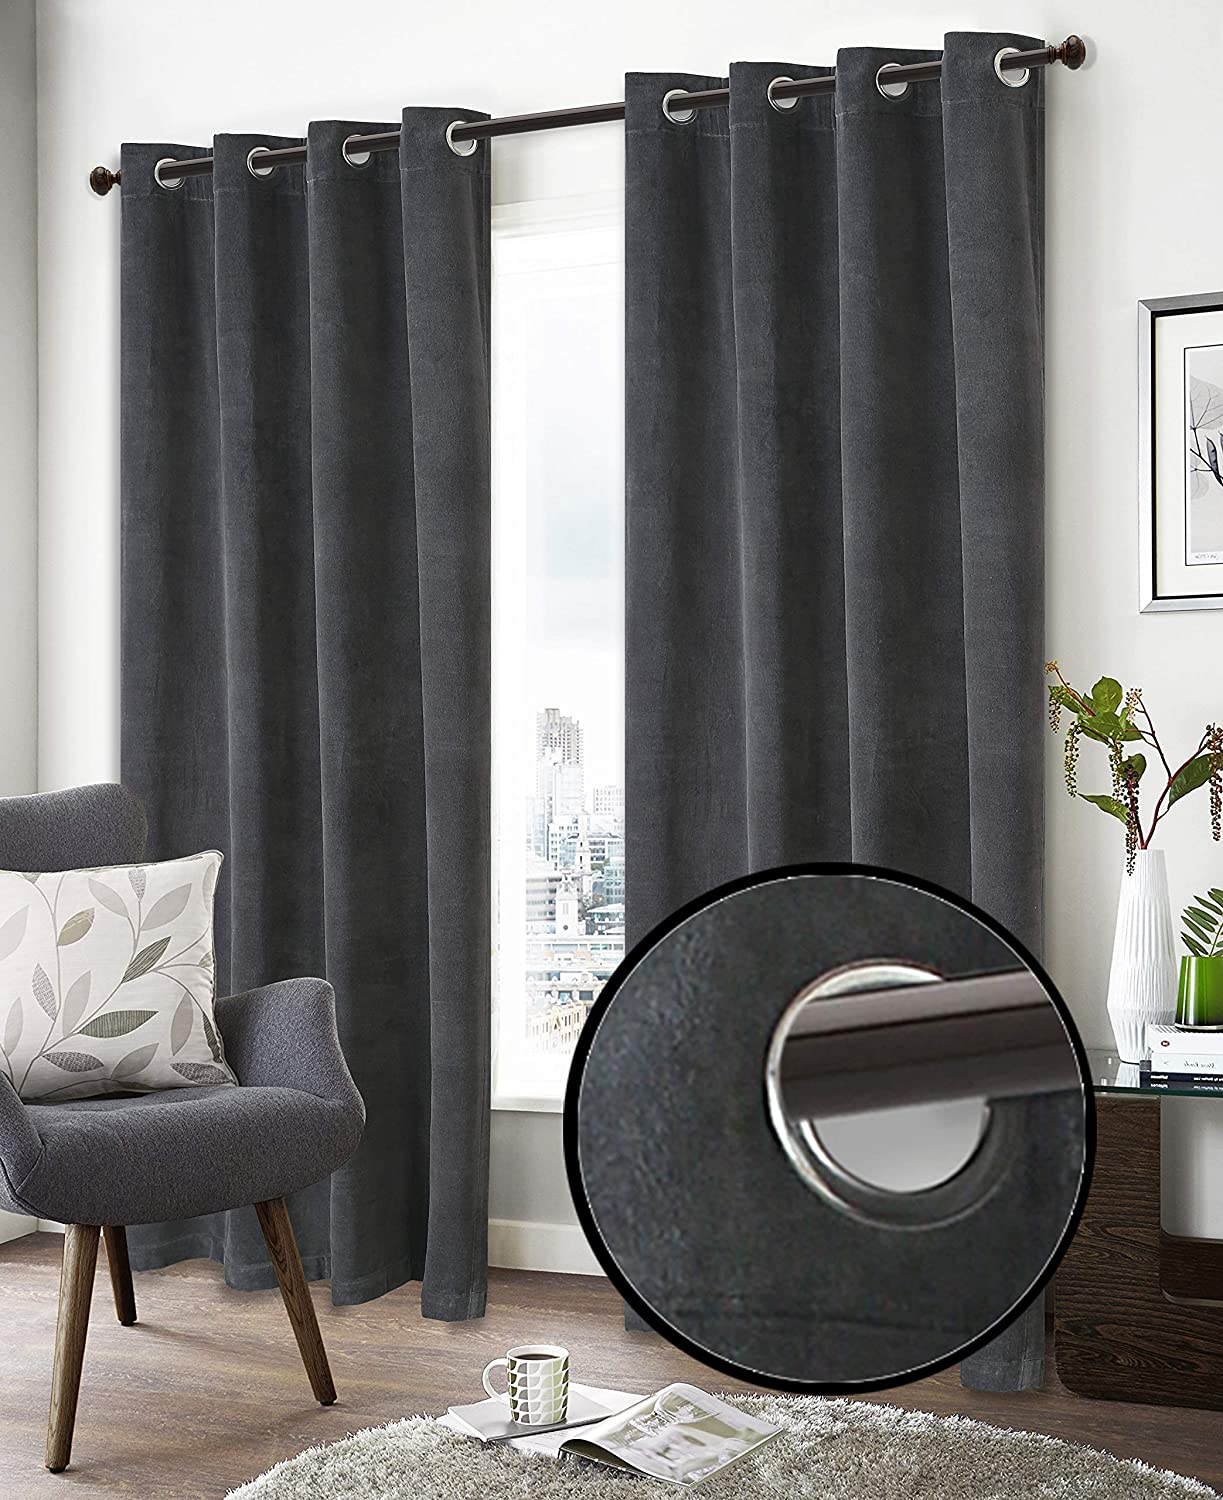 Super Soft Luxury Velvet Window Curtain, 50 Inch x 108 Inch, Velvet Cotton Grommet Window Curtain Panel, Set of 2, Charcoal